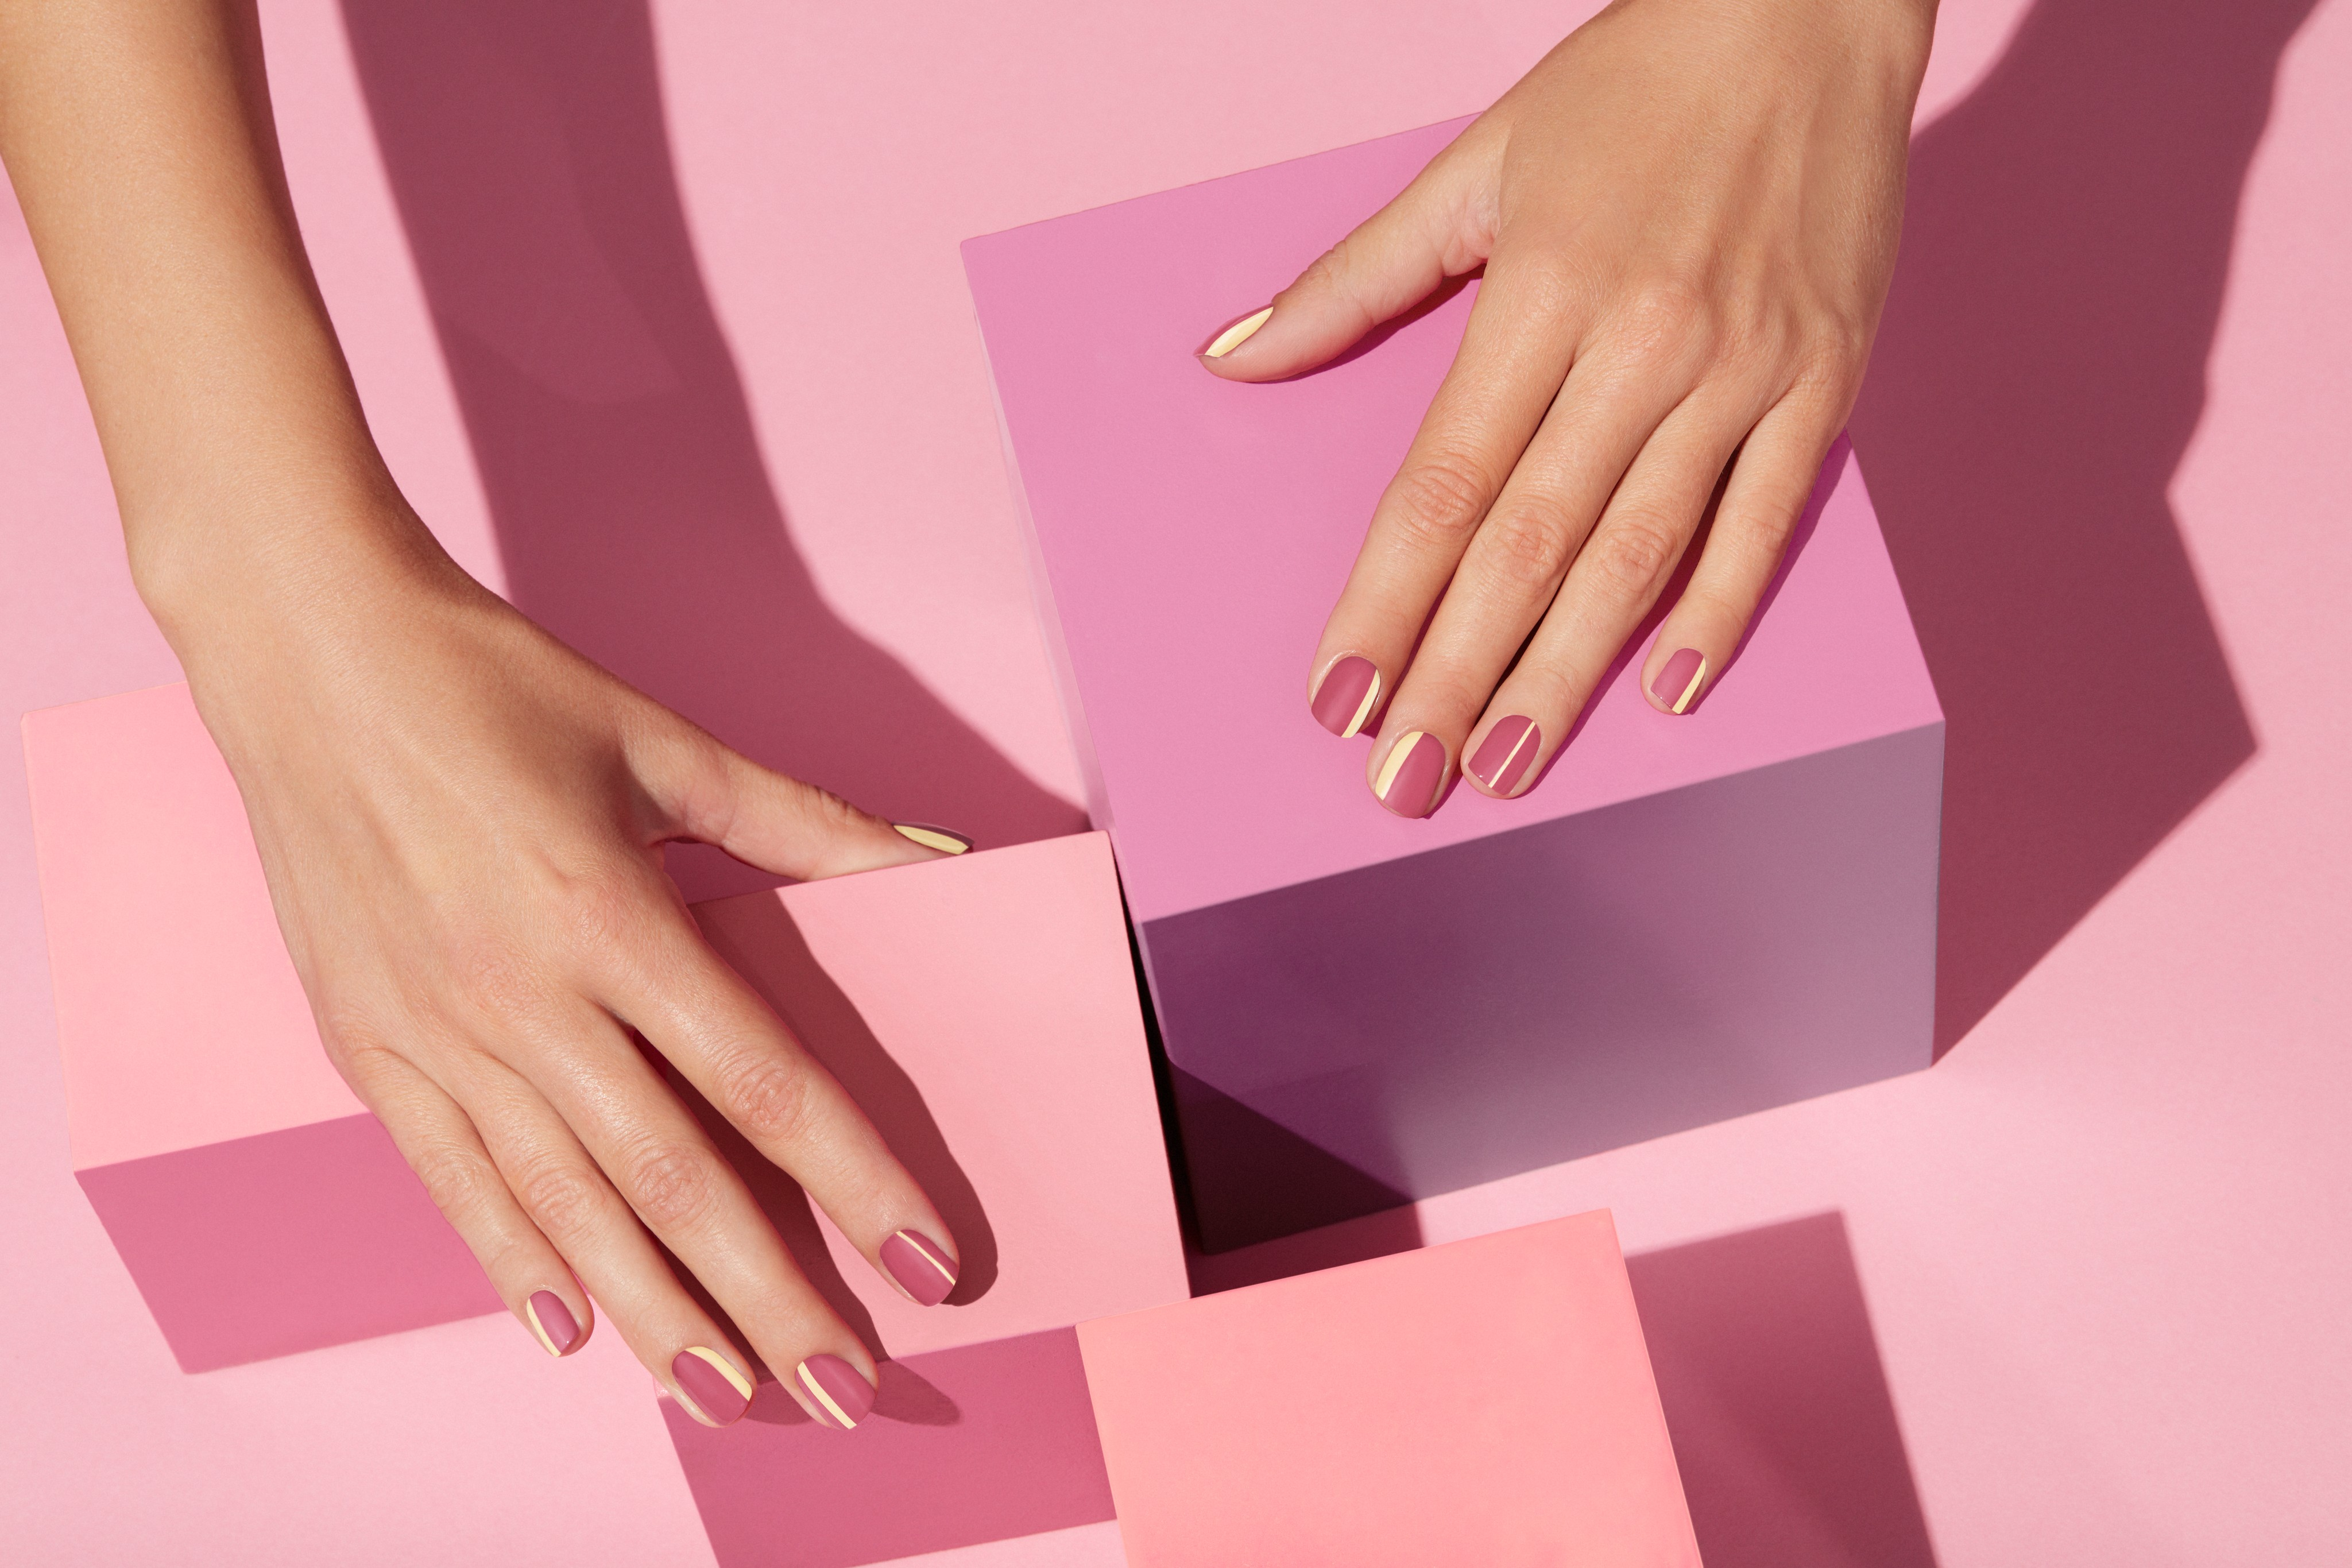 Nailcare-beautyvisual-pastel-yellow-rose-stripes-pink-cubes-0821-Web-Rendition